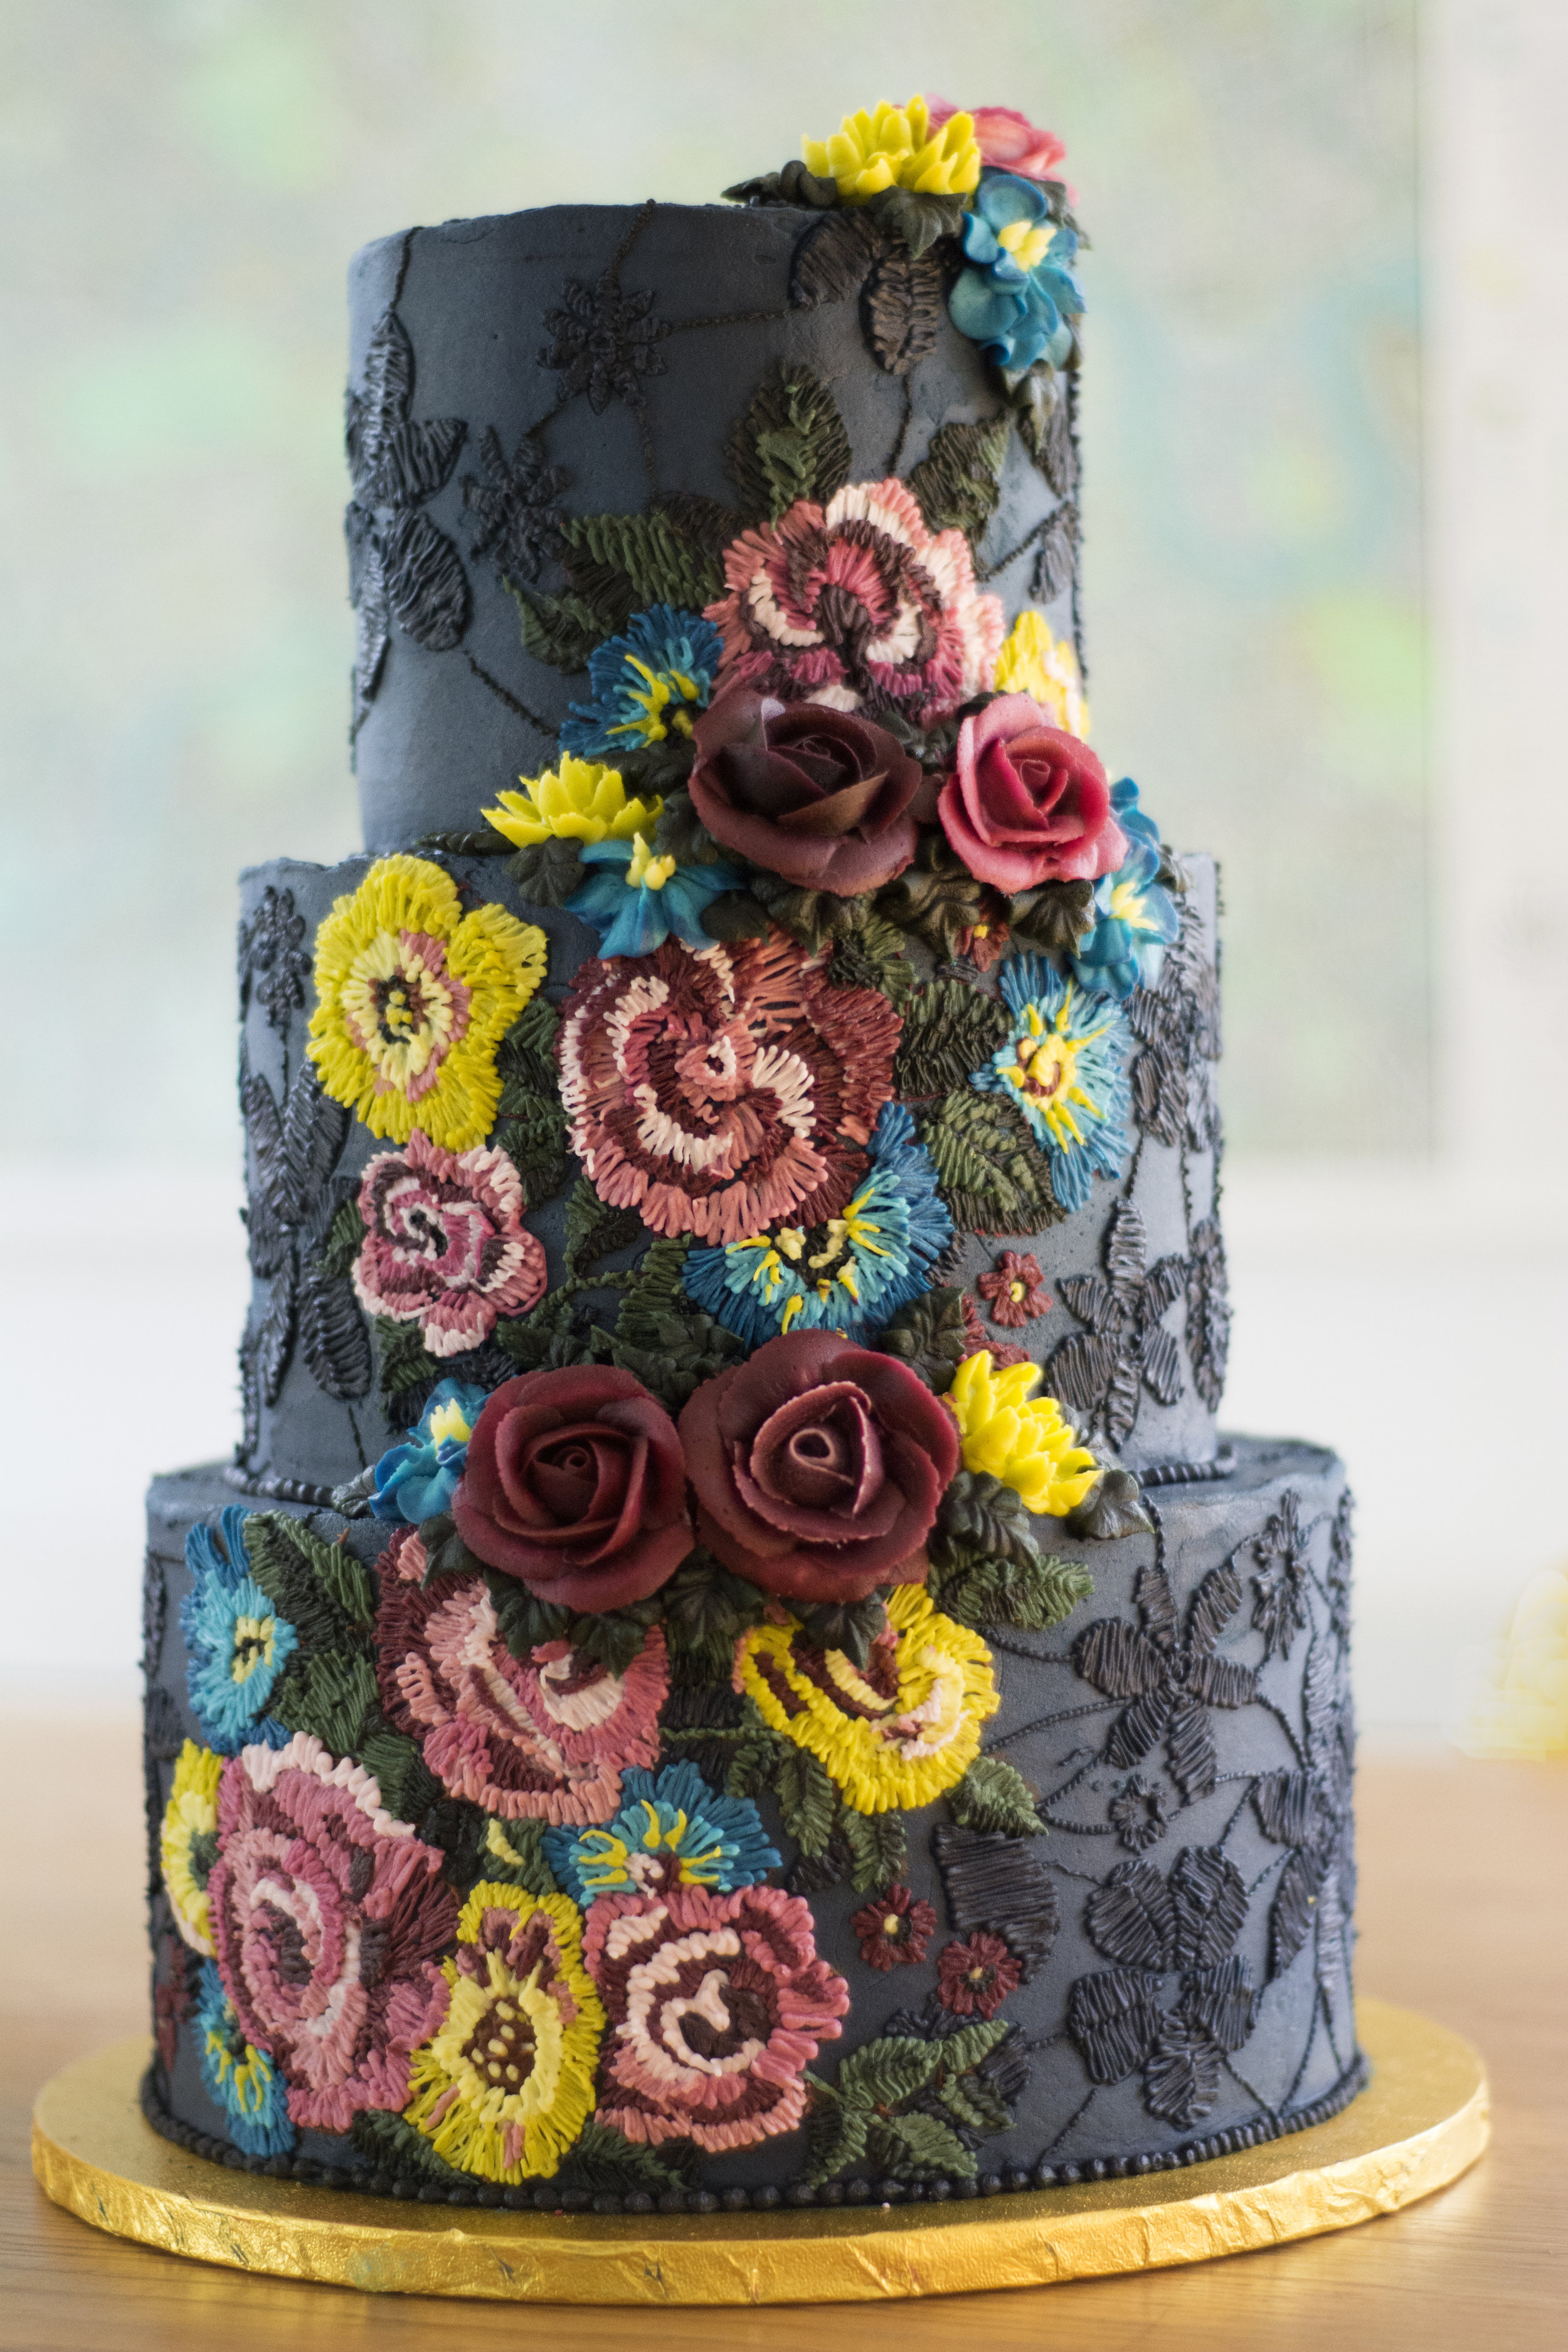 Black chocolate buttercream cake with embroidery piping by Emma Page Buttercream Cakes London